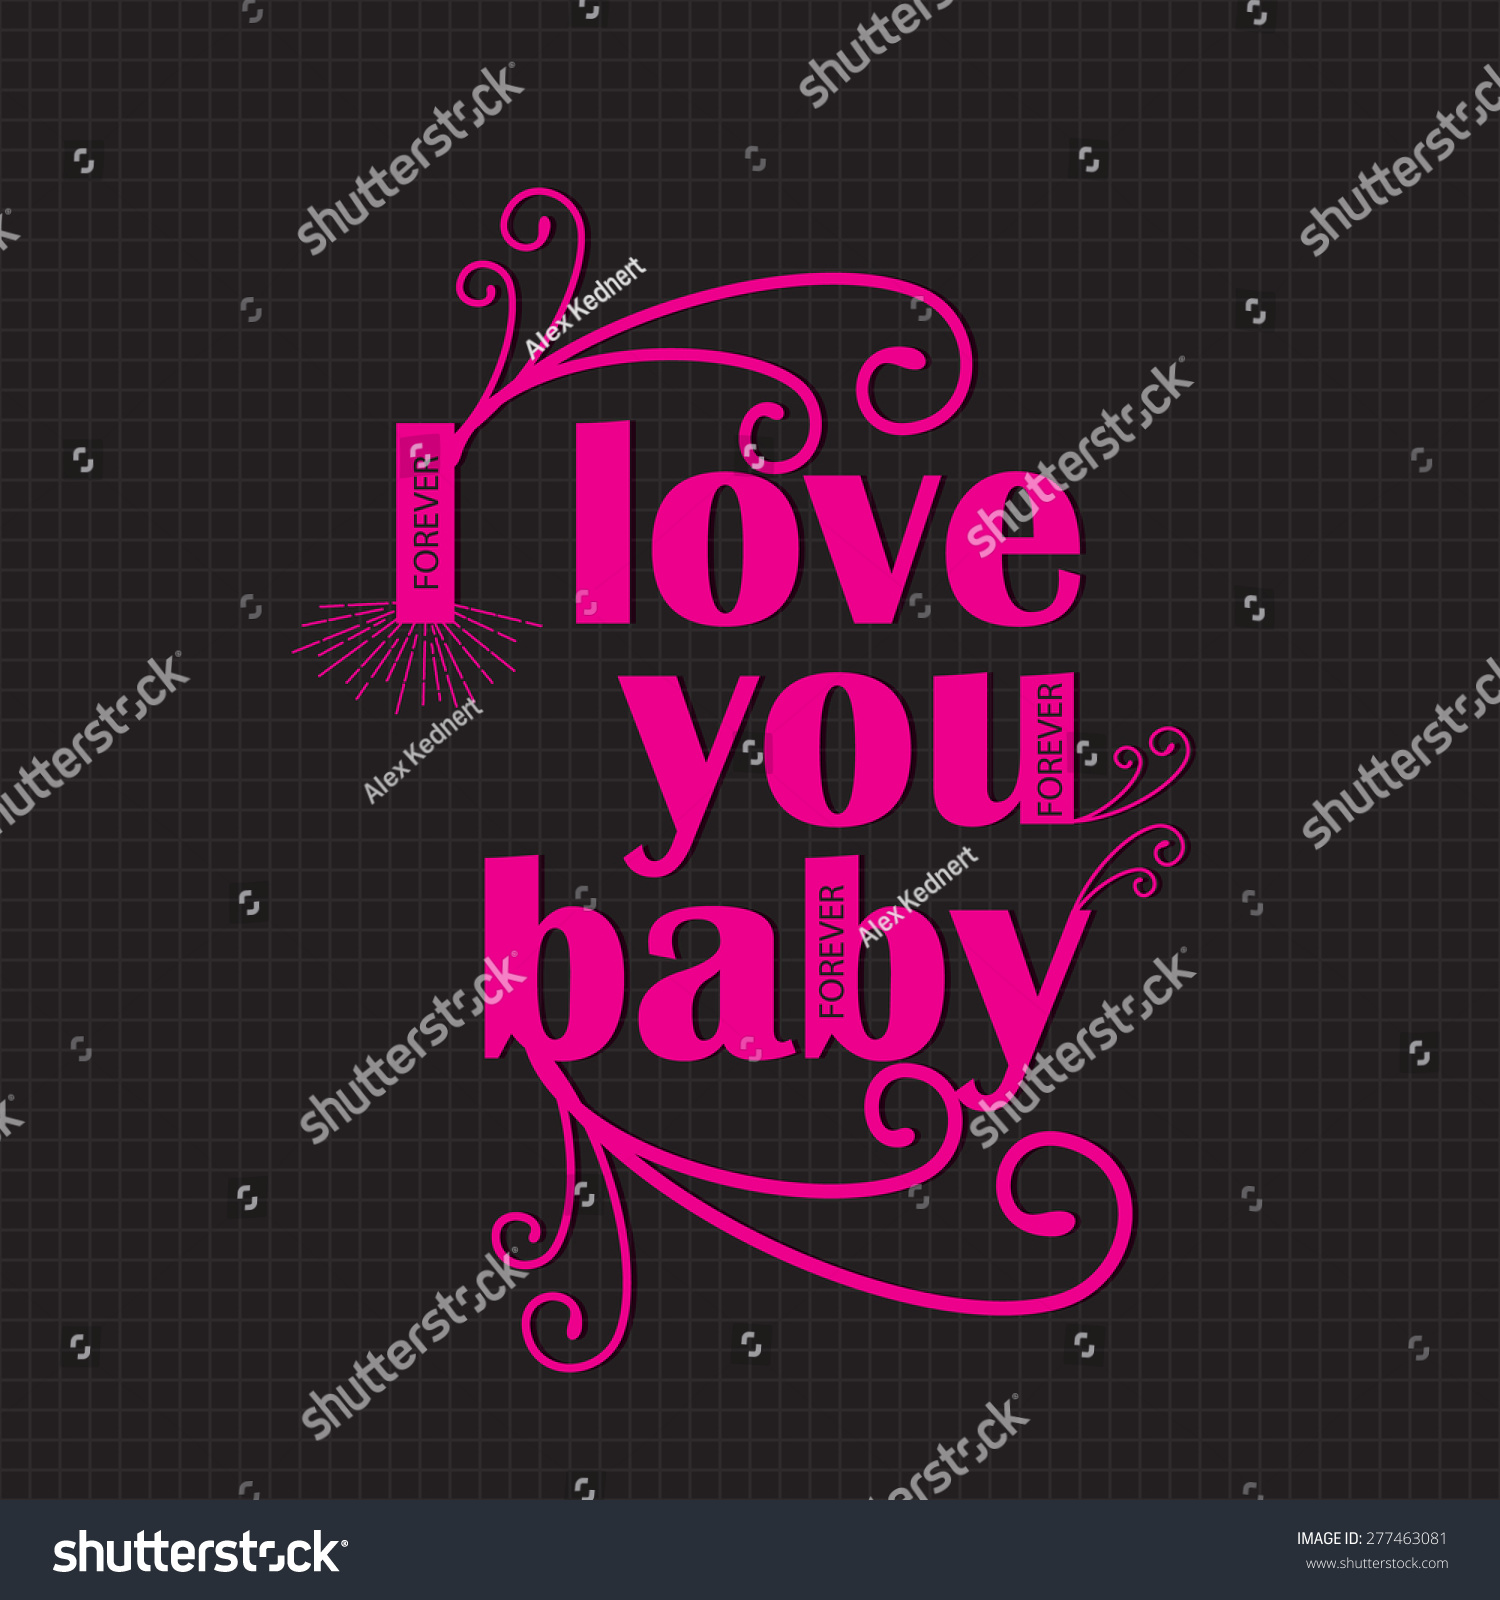 i love you baby graphics - photo #21